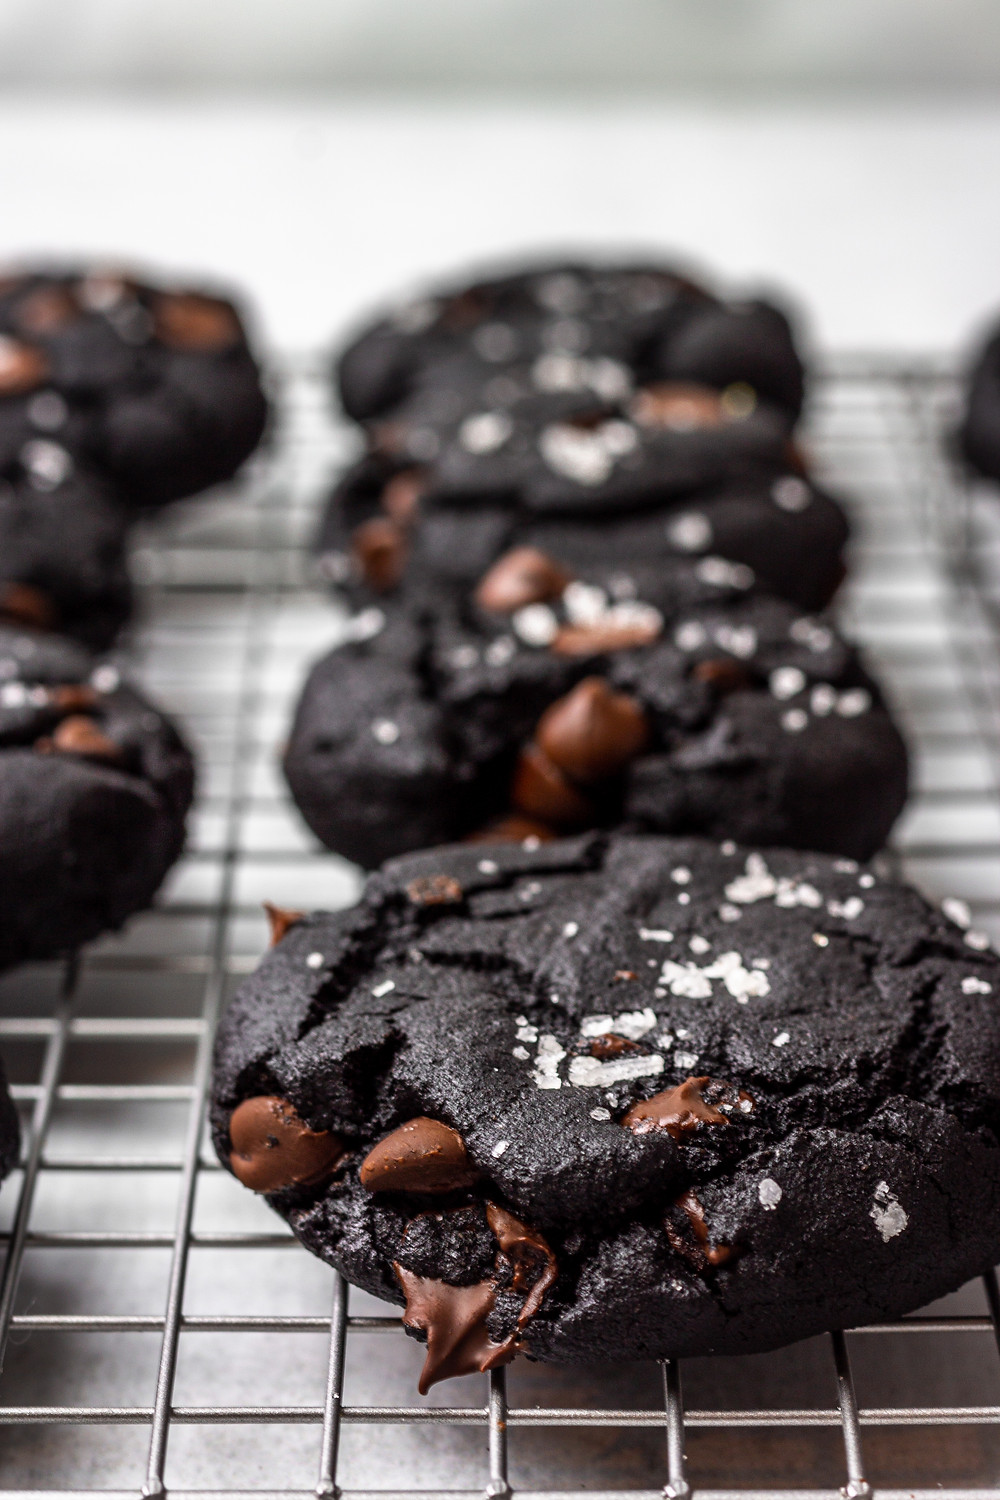 Paleo Double Chocolate Sea Salt Olive Oil Cookies - A Paleo Dessert - Pretty Delicious Life - First of all, can we all pause for a collective moment to drool over this decadent paleo dessert? Alright, now that that's over with I hope you worked up an appetite because you're likely going to want to eat